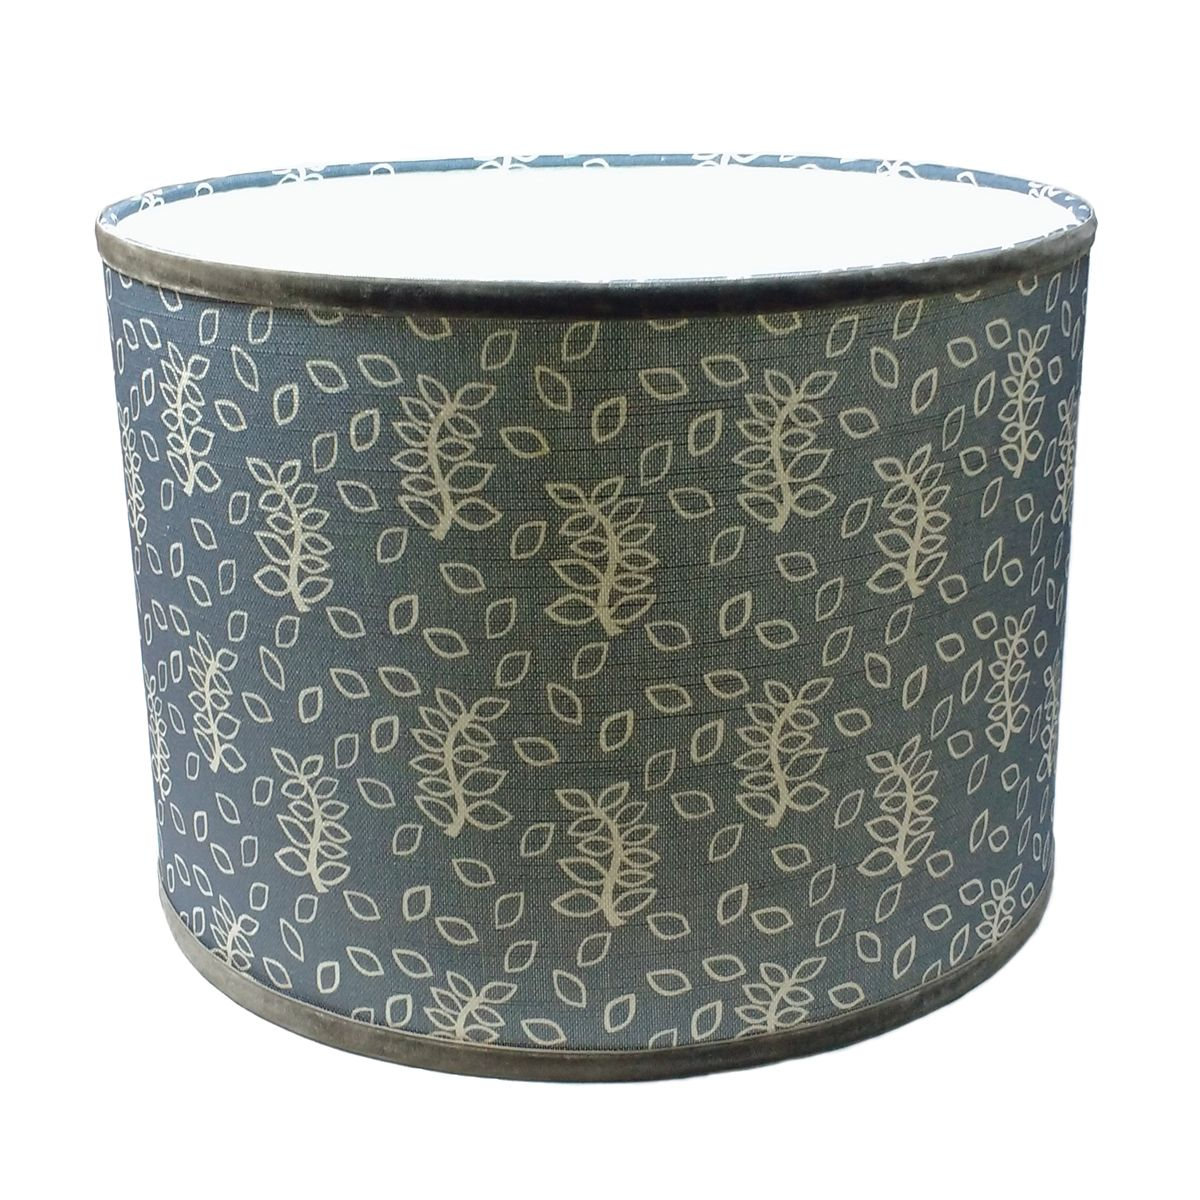 Nutmeg and Sage bespoke and handmade to order accent lampshades